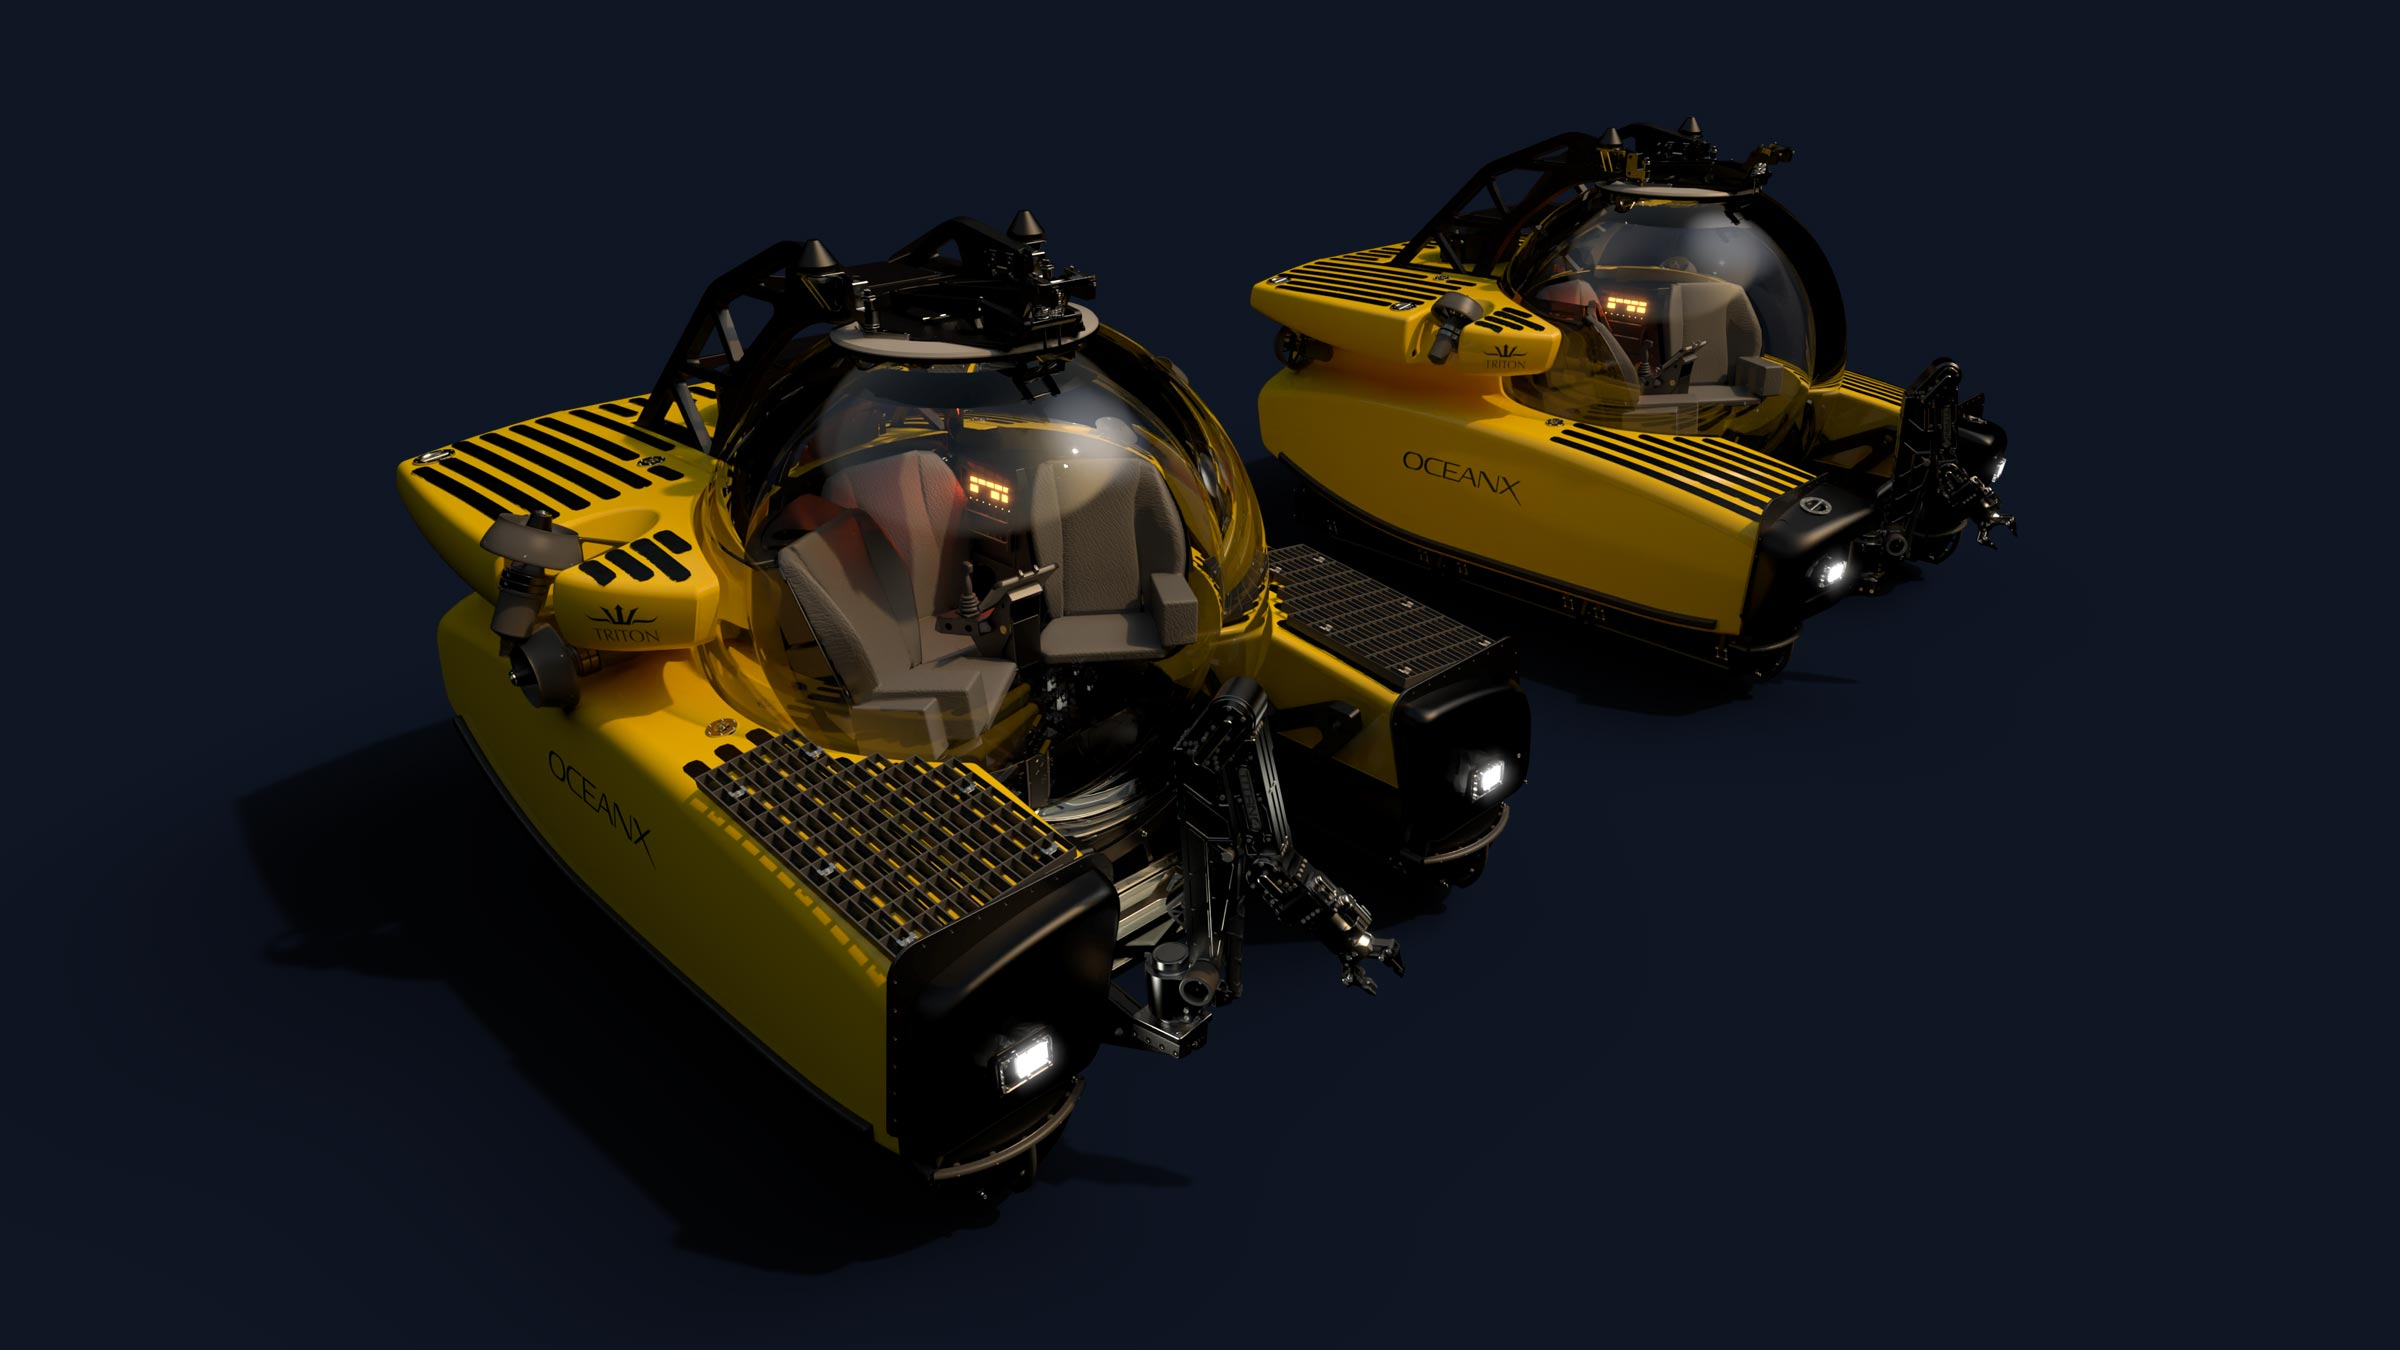 Image of the two TRITON 3300/3 submersibles owned by OceanX